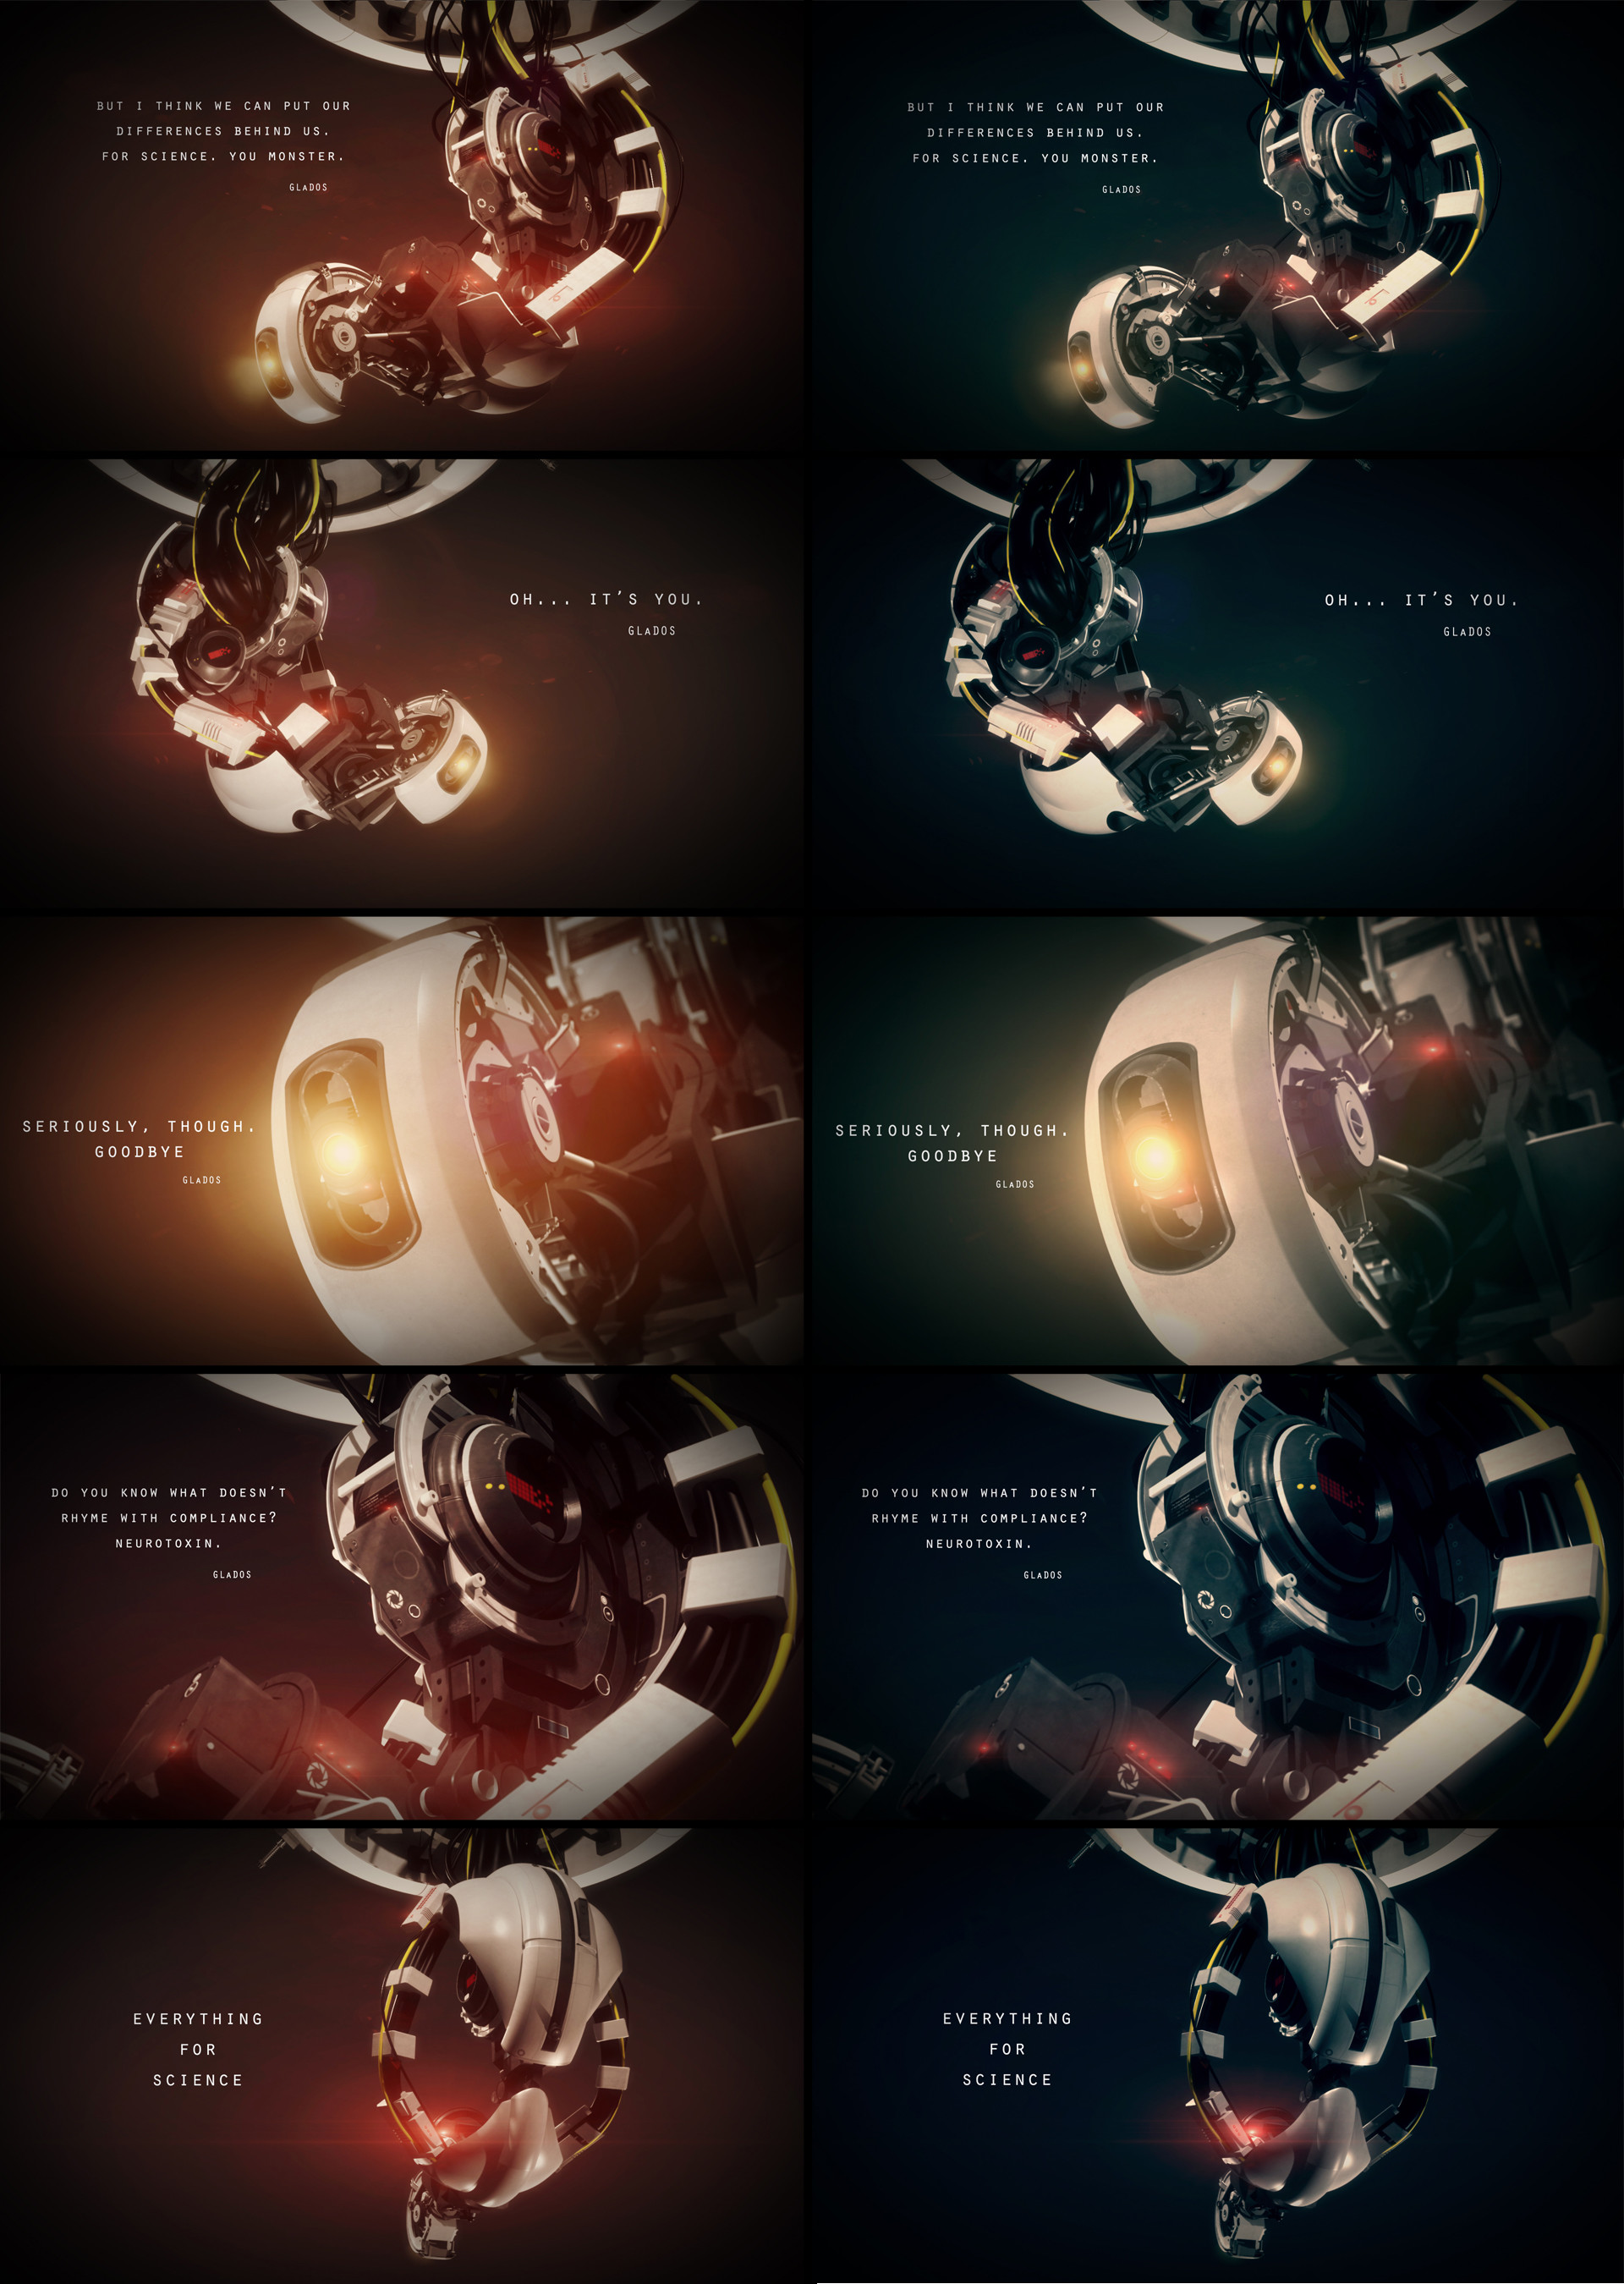 1920x2700 GLaDOS Quotes | GLaDOS - Wallpapers by First9 on deviantART · Portal 2